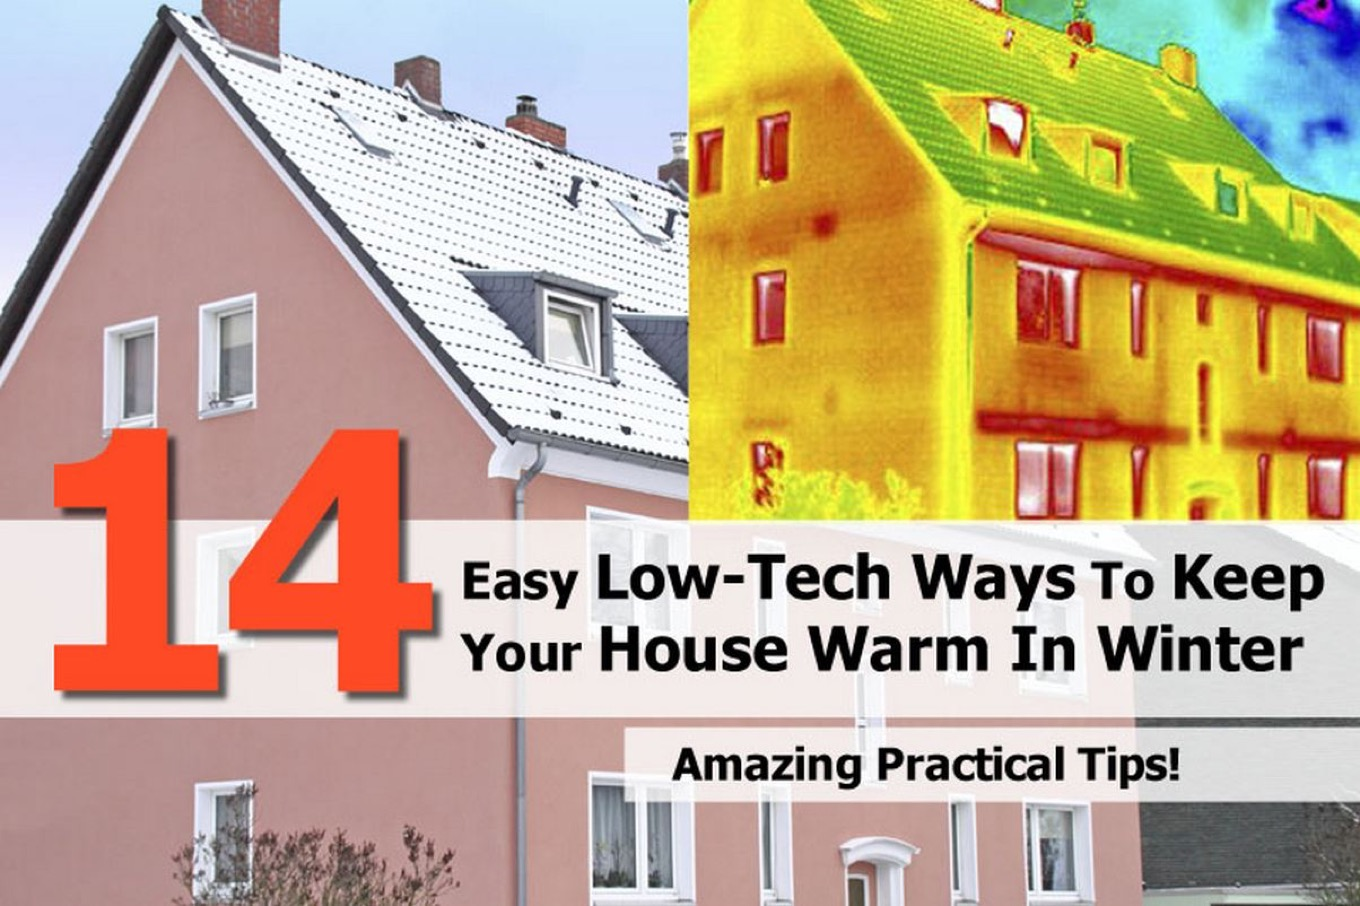 14 easy low tech ways to keep your house warm in winter